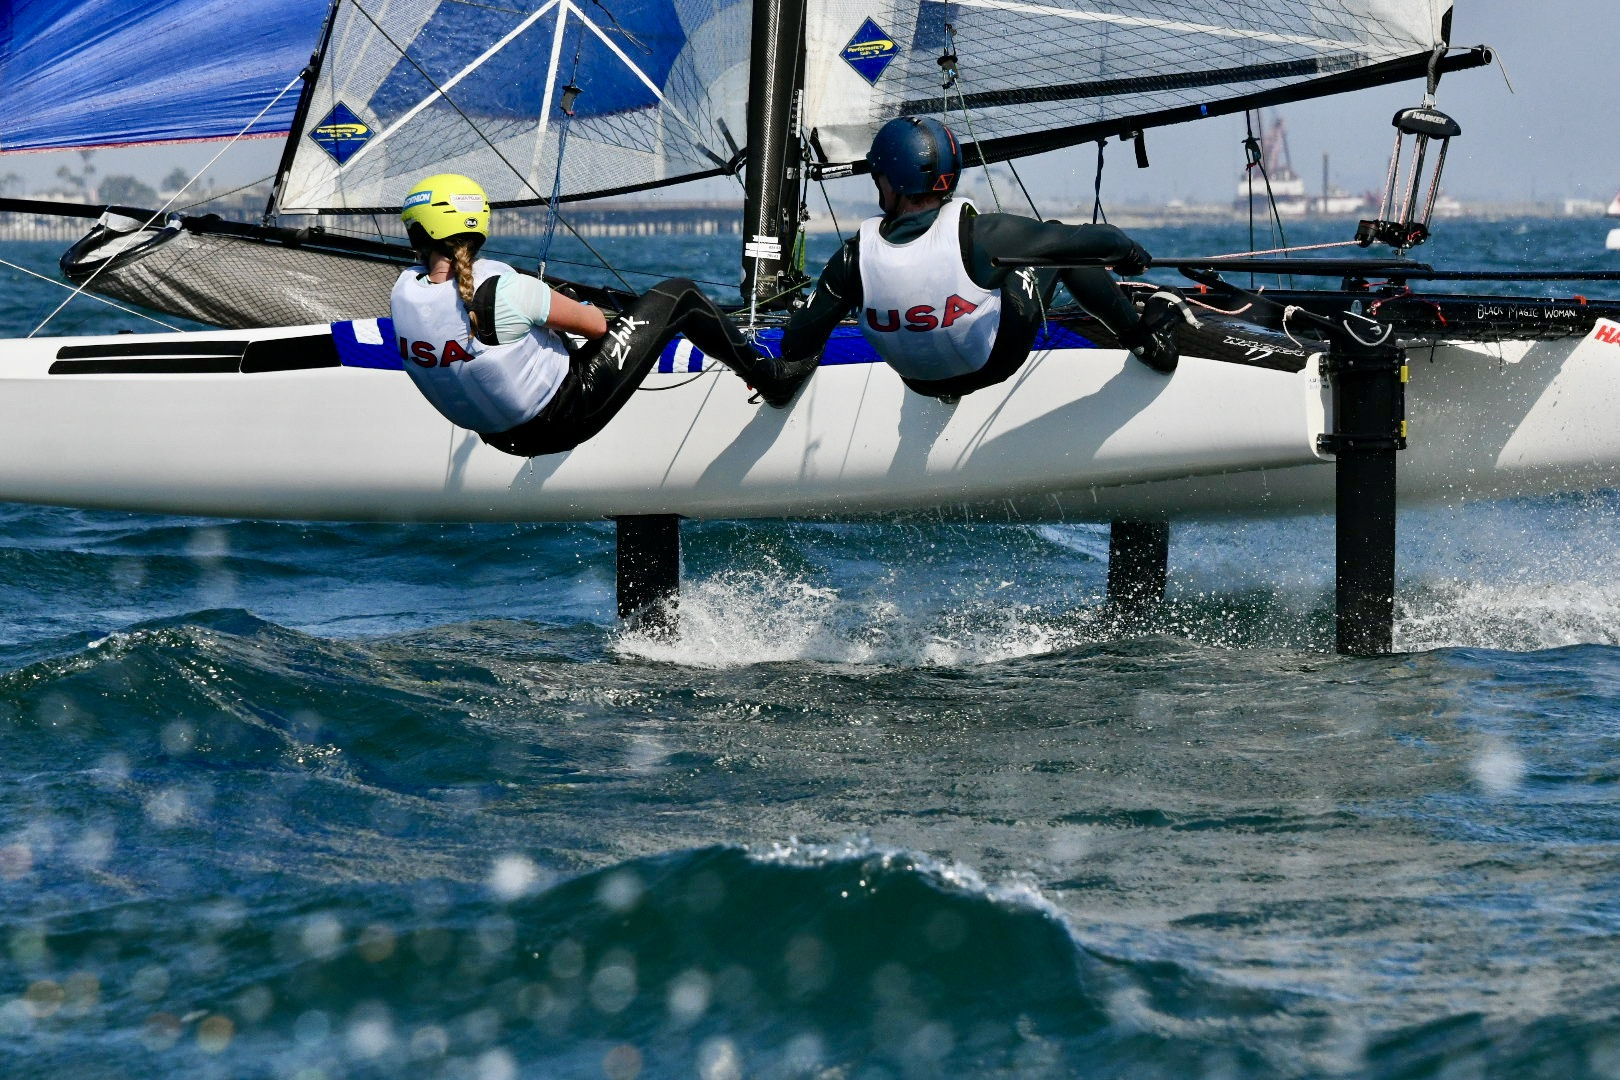 Youth Sailors Capitalize On A Challenging Year While Preparing For Better Sailing Days Ahead